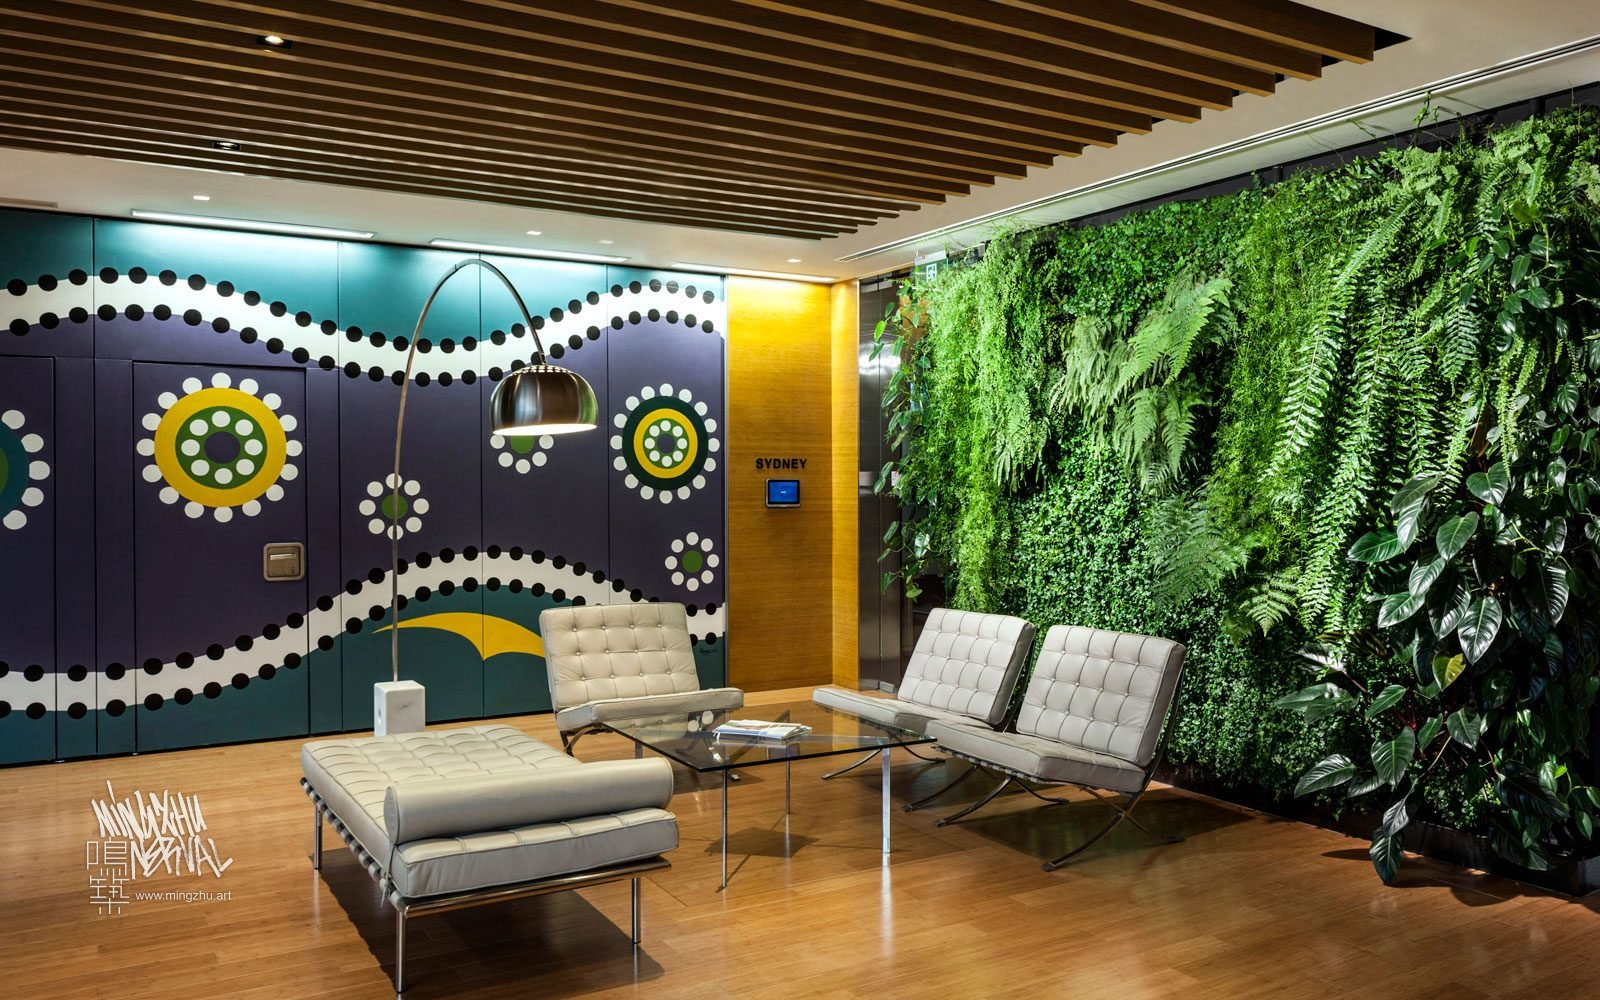 At Mingzhu Nerval, we thrive at creating the most beautiful vertical gardens in the world. For Lendlease, we created a special New Zealand living wall design - Shanghai, 2014.